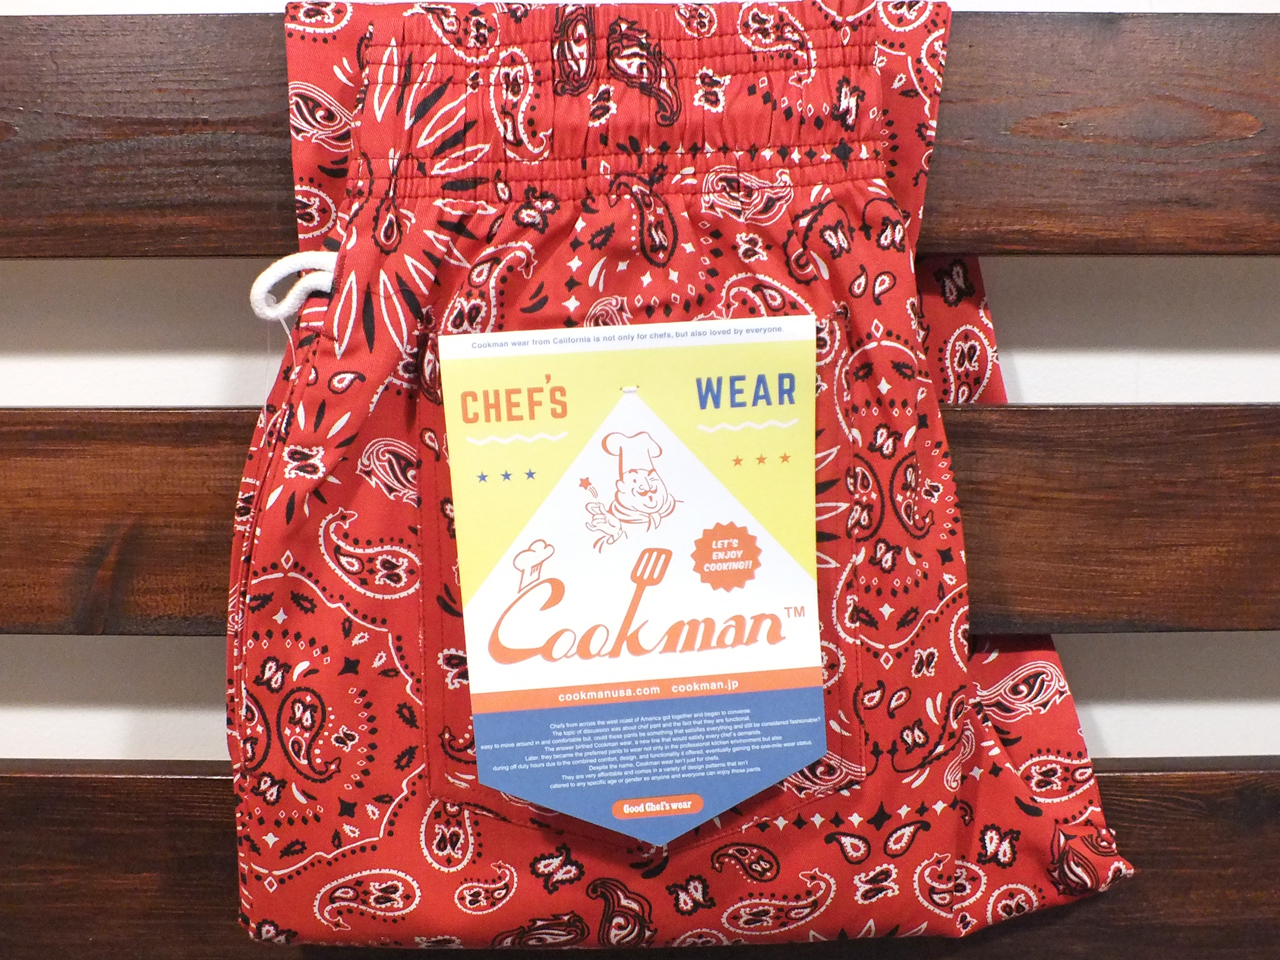 COOKMAN LOS ANGELES CALIFORNIA CHEF PANTS PAISLEY RED